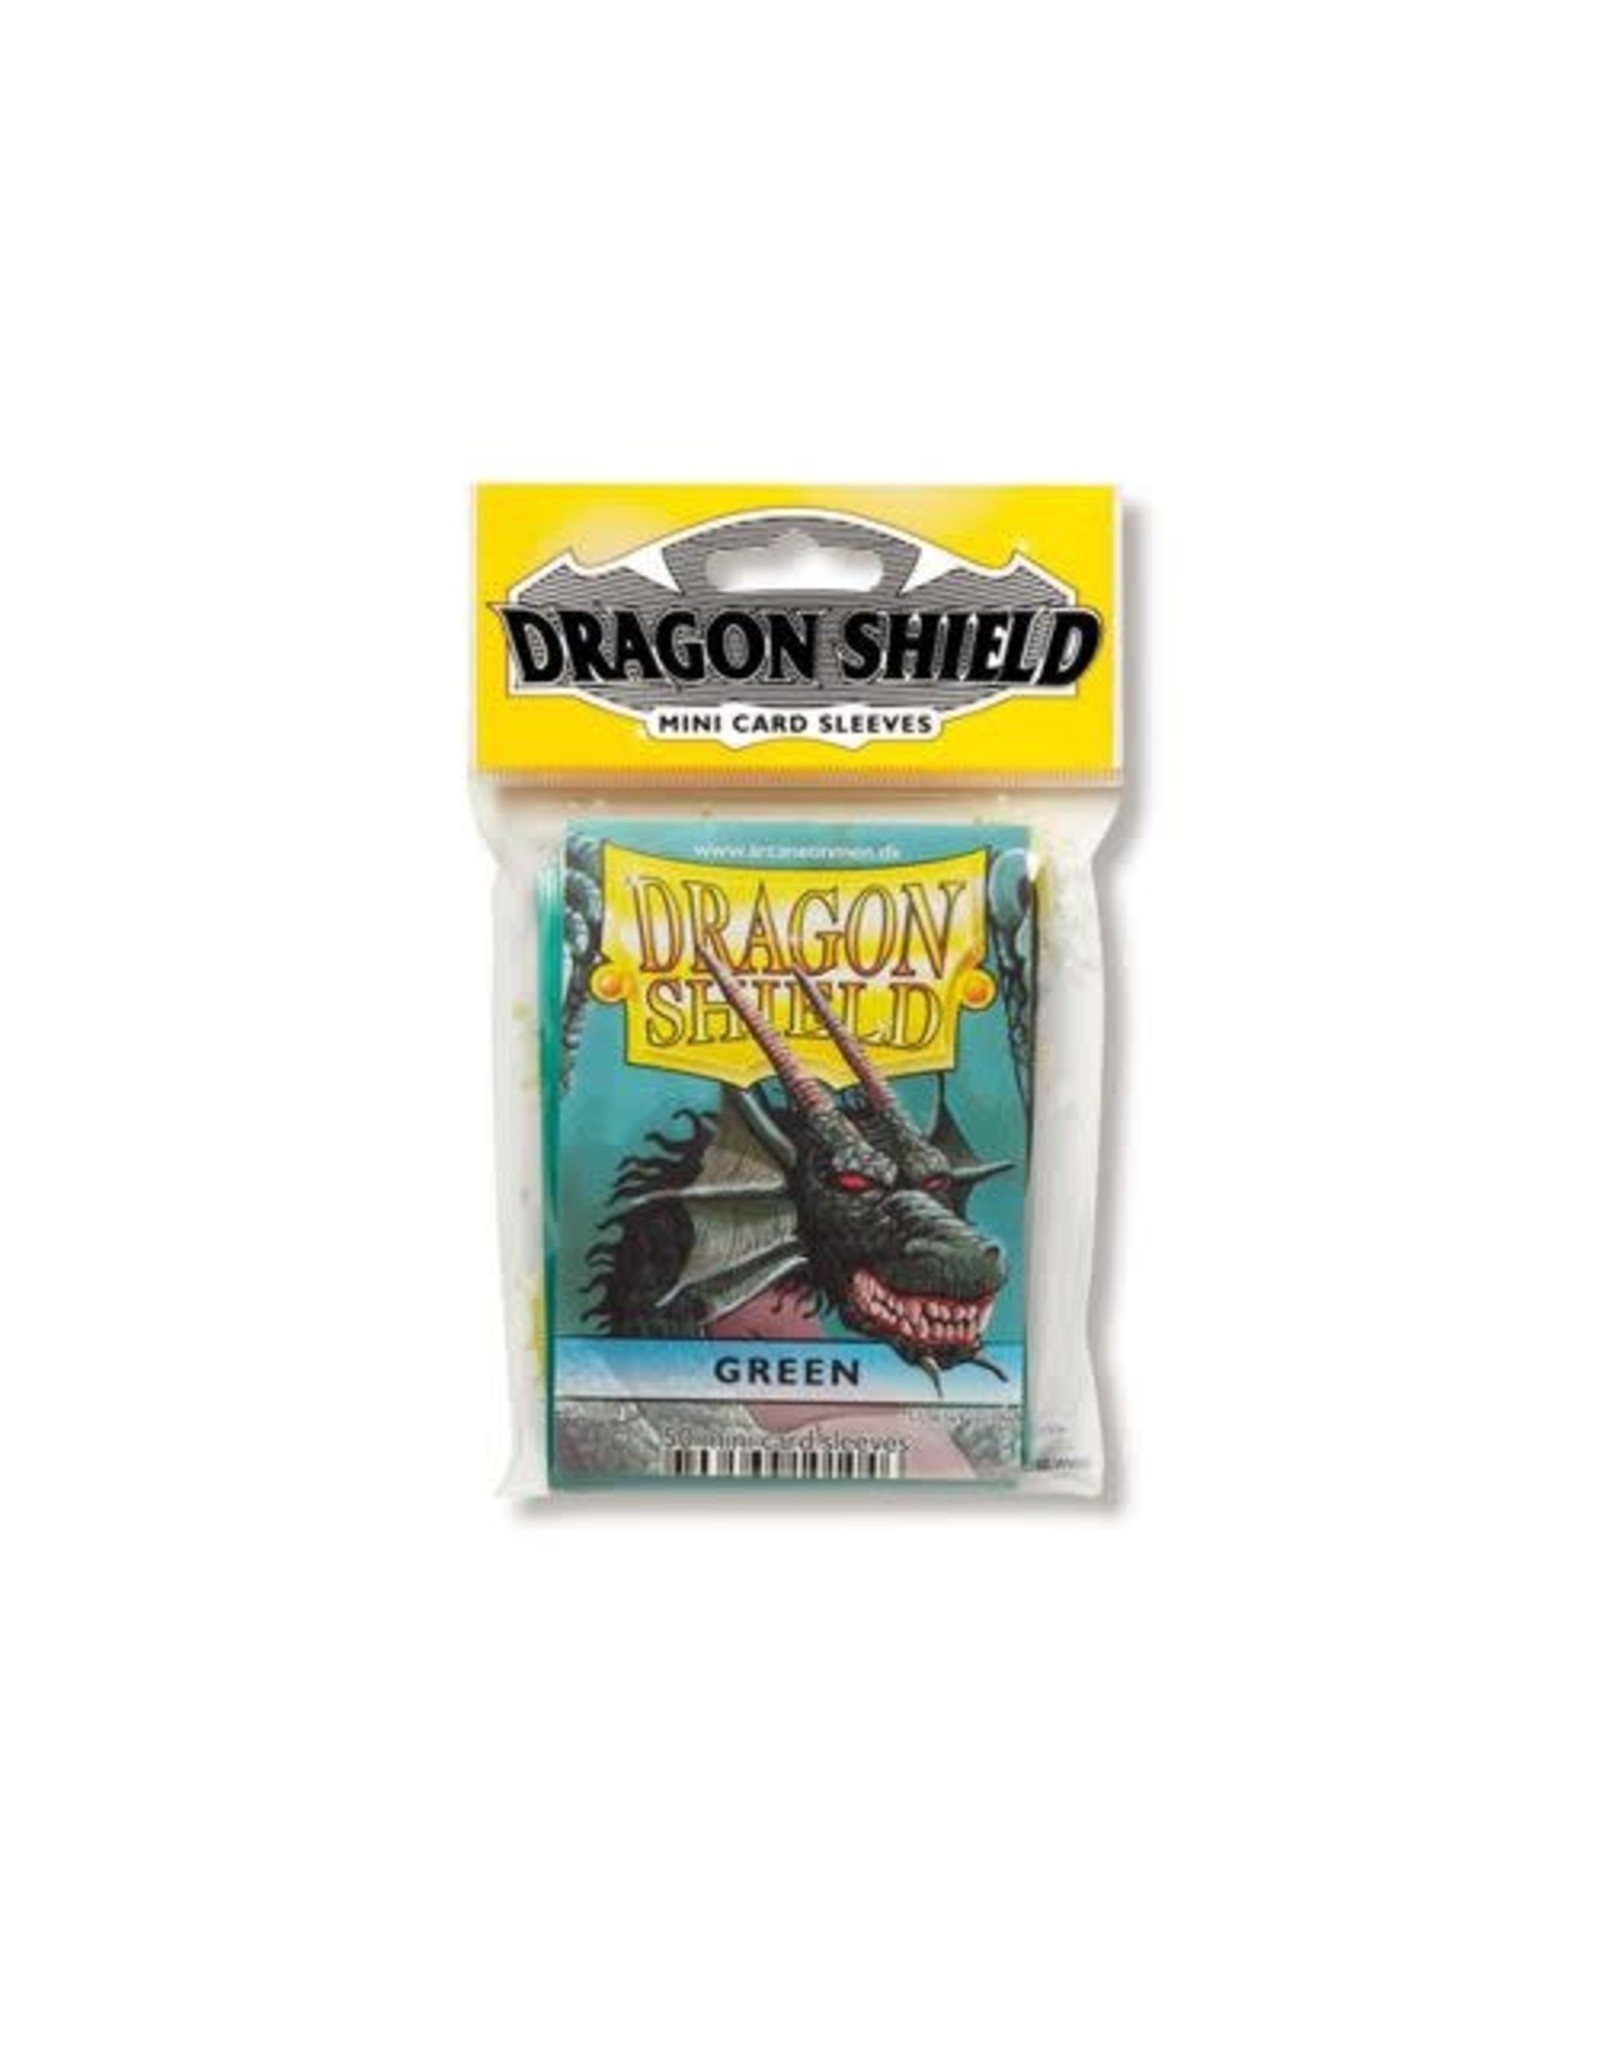 Dragon Shield Mini Sleeves - Green (50 ct. in bag)